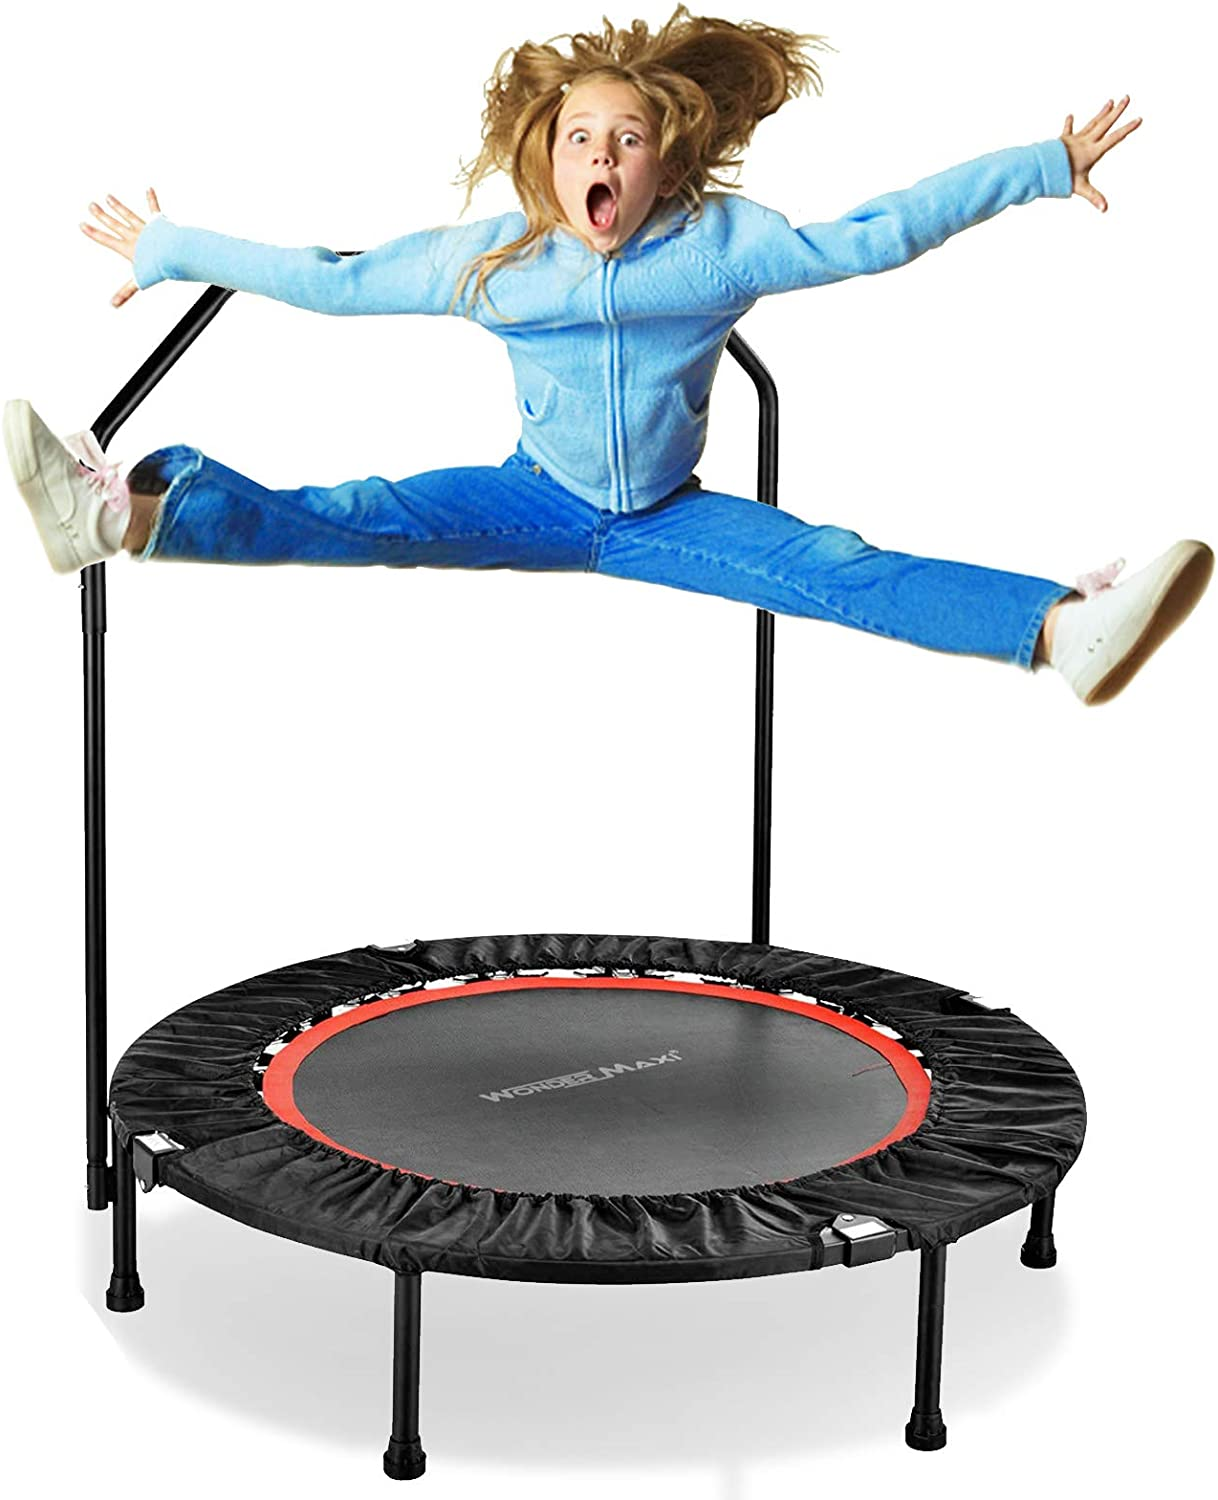 Wonder Maxi Foldable Fitness Trampoline, 40 Inch Mini Rebounder Trampoline with Handrail and Safety Pad for Kids Adults Indoor Outdoor Workout Cardio Exercise